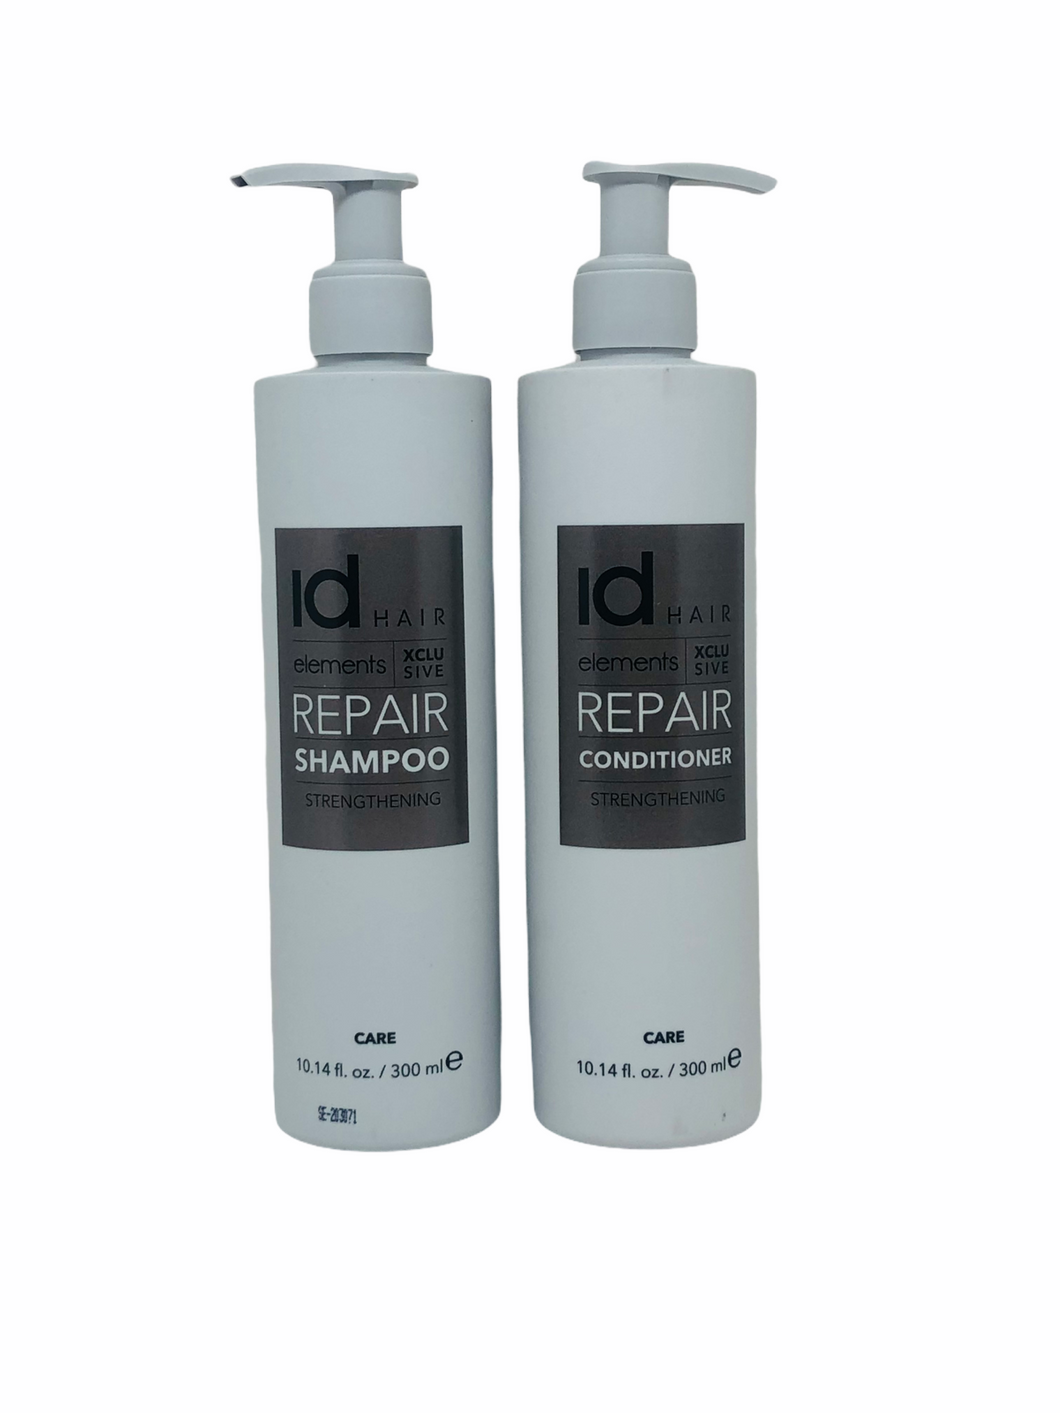 Id Hair elements Repair Shampoo 300 ml  und Conditioner 300 ml